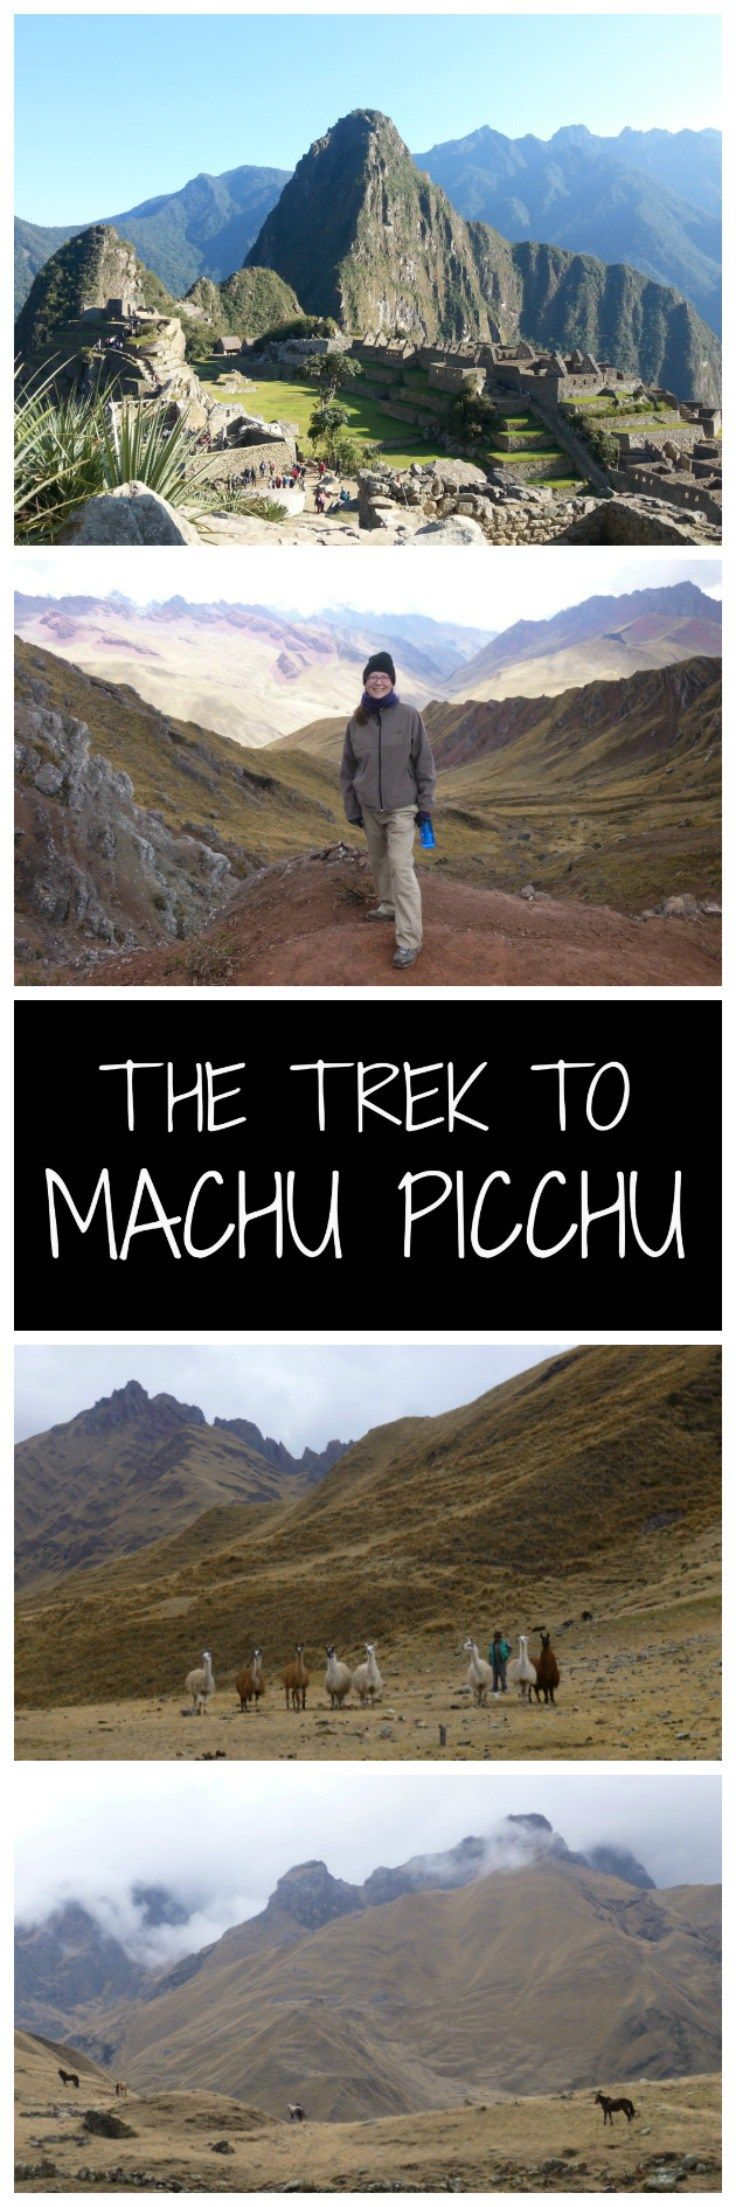 The trek to Machu Picchu is an incredible, challenging, once in a lifetime experience. For those who weren't able to book the traditional Inca Trail, this gives you a taste of other options that are available for the trek across Peru's mountains to the Inca Citadel of Machu Picchu.